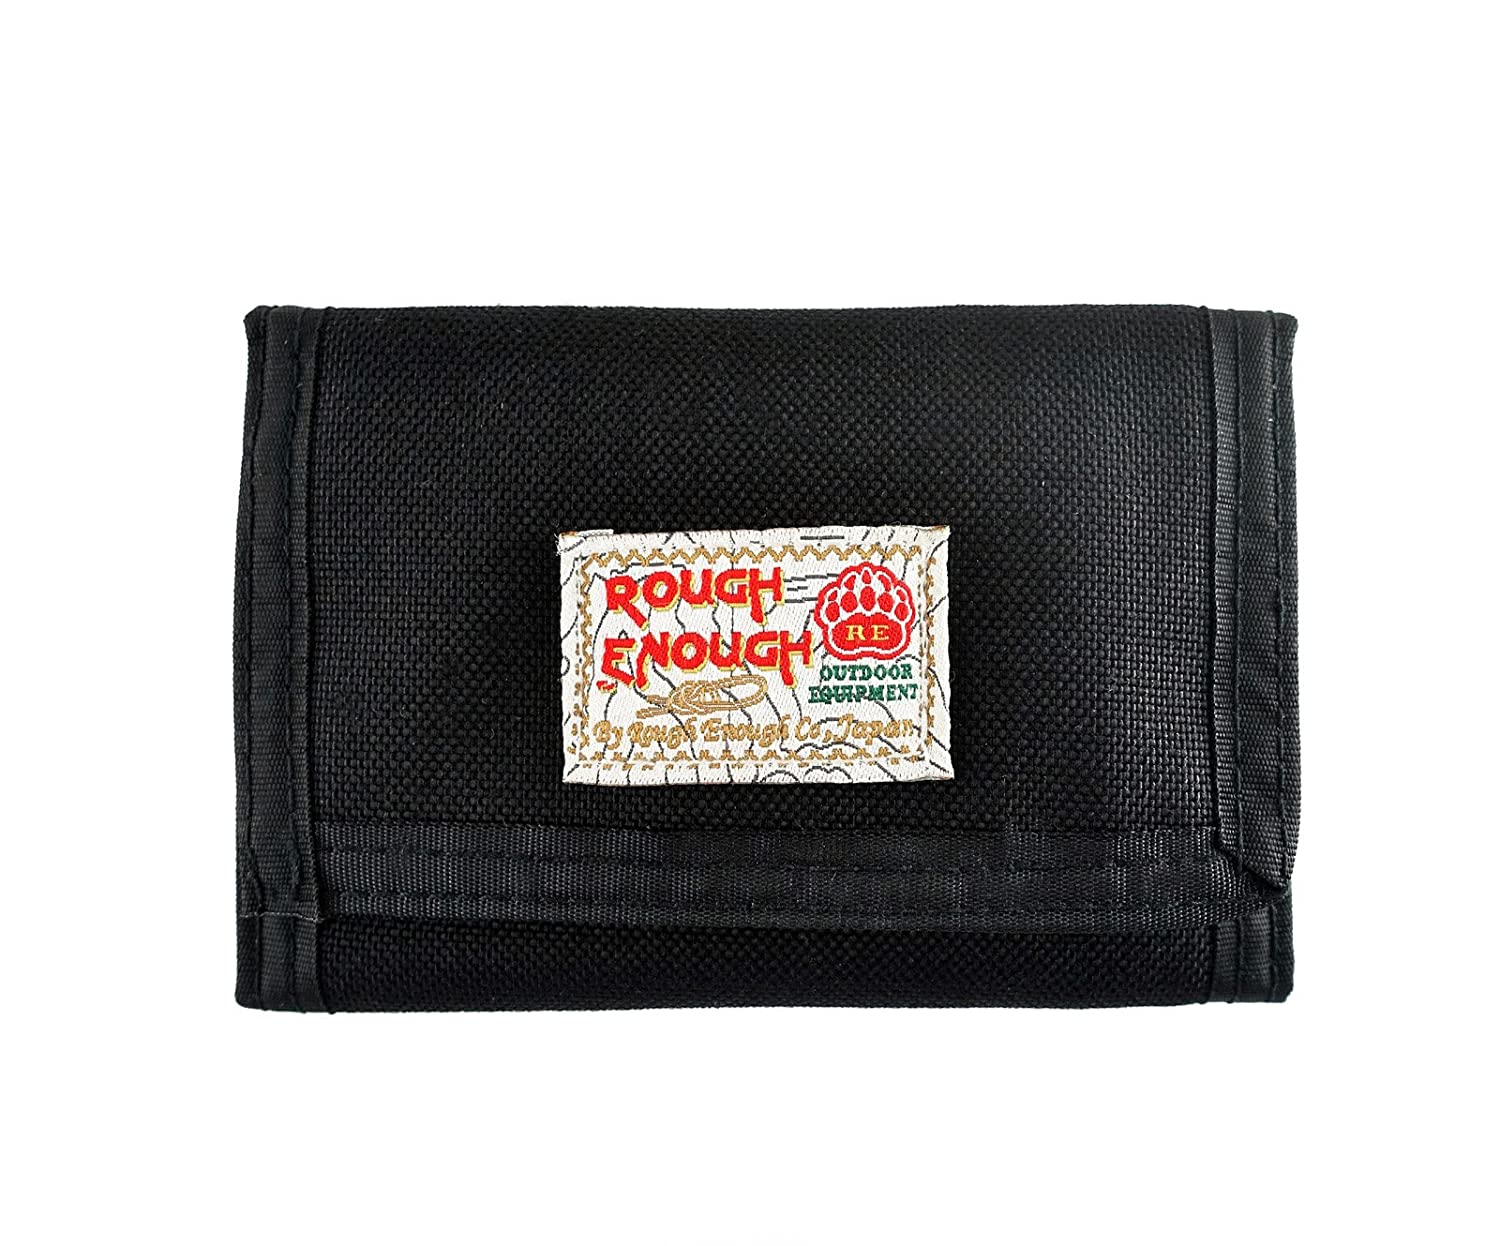 Amazon.com: Rough Enough Multi-Function Vintage Sports Outdoors Classic Basics Cordura Slim Small Mini Trifold Portable Wallet Coin Purse Credit Card Holder ...